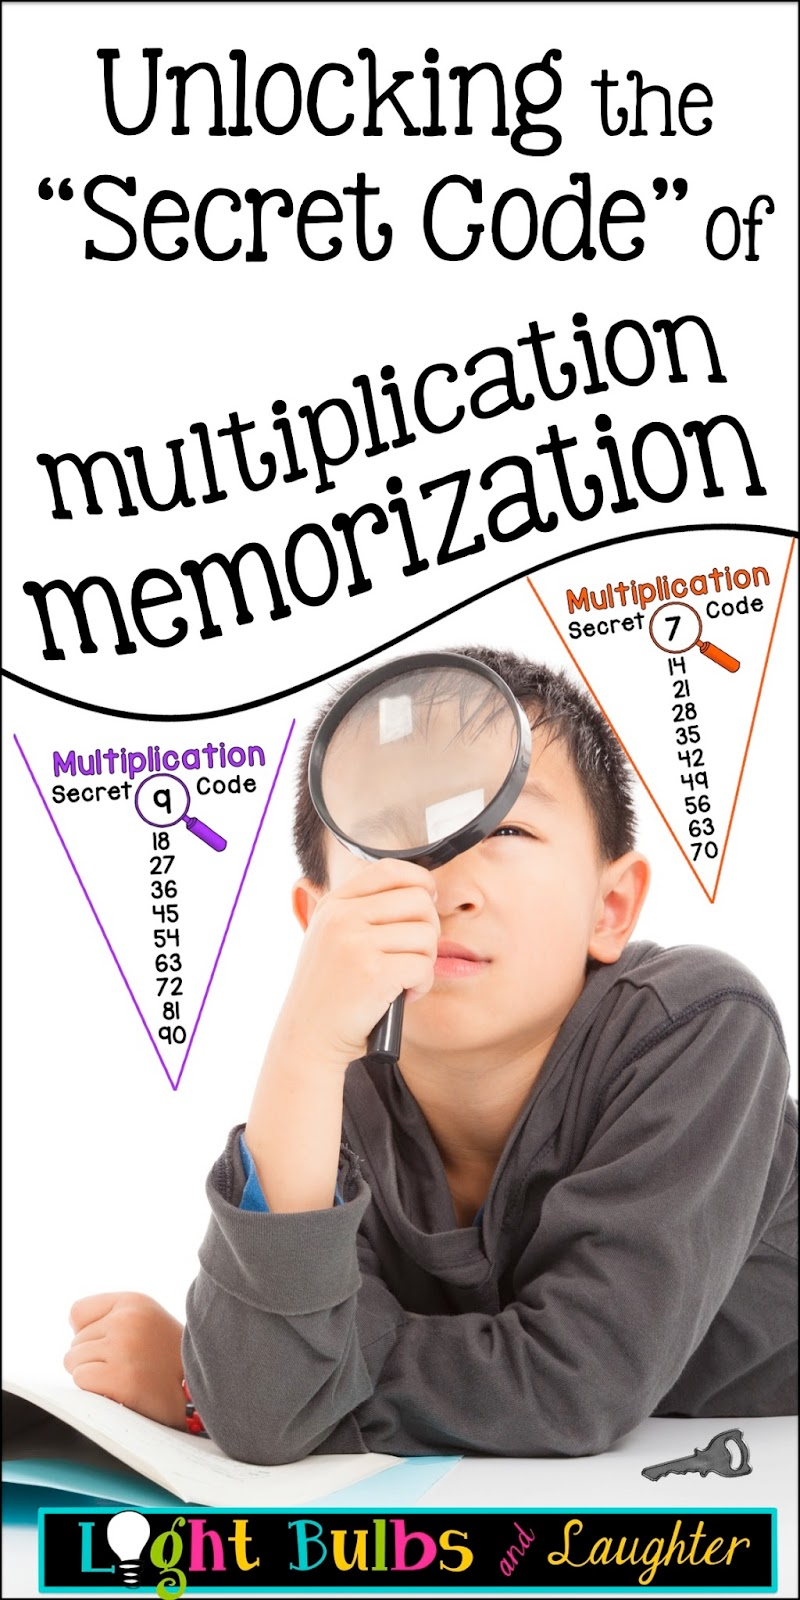 Unlocking The Secret Code Of Multiplication Memorization